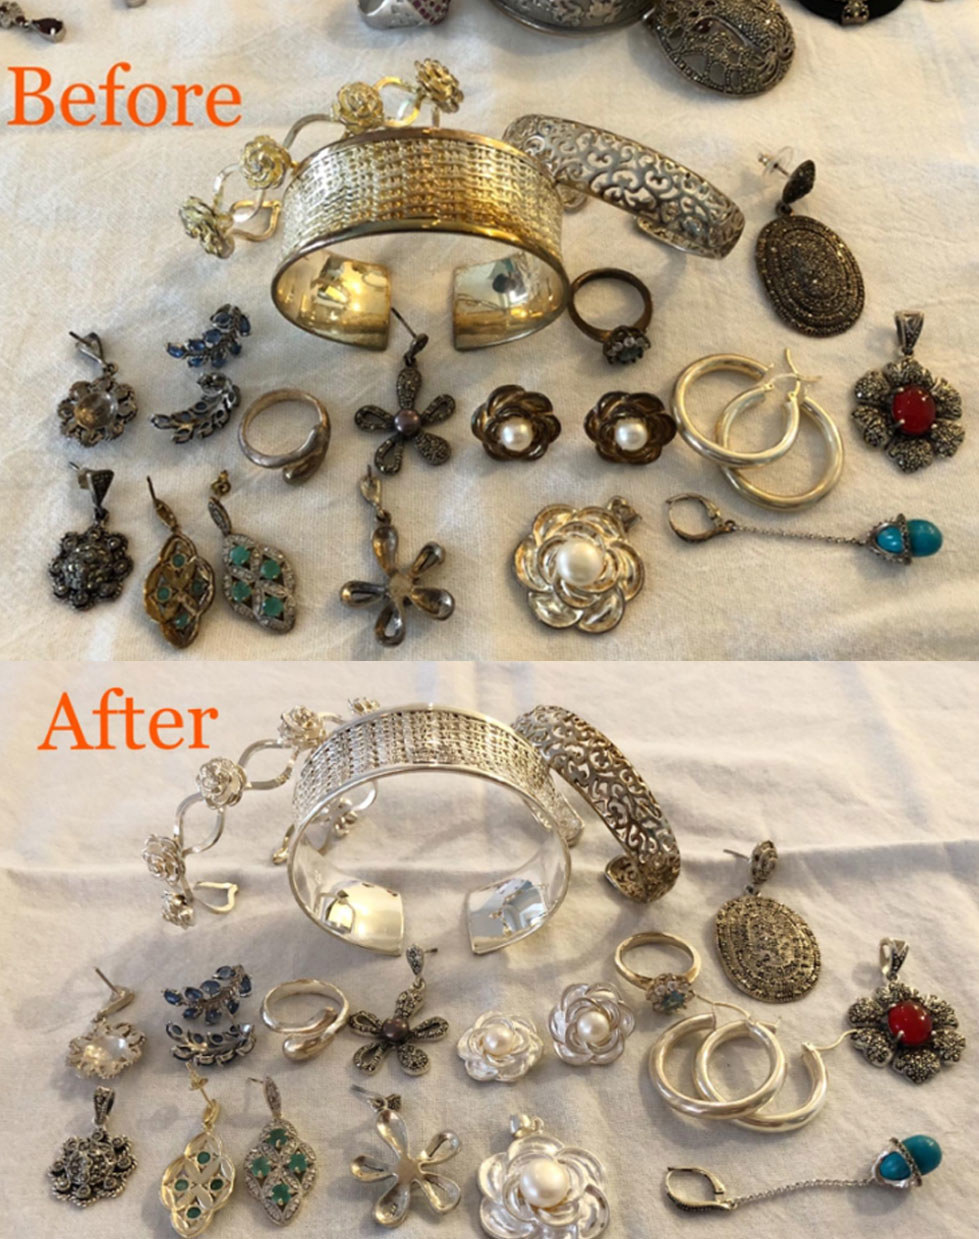 Reviewer's before photo of their darkened and worn jewelry full of rust, and an after photo showing the same jewelry, which now looks shiny, sparkly, and new